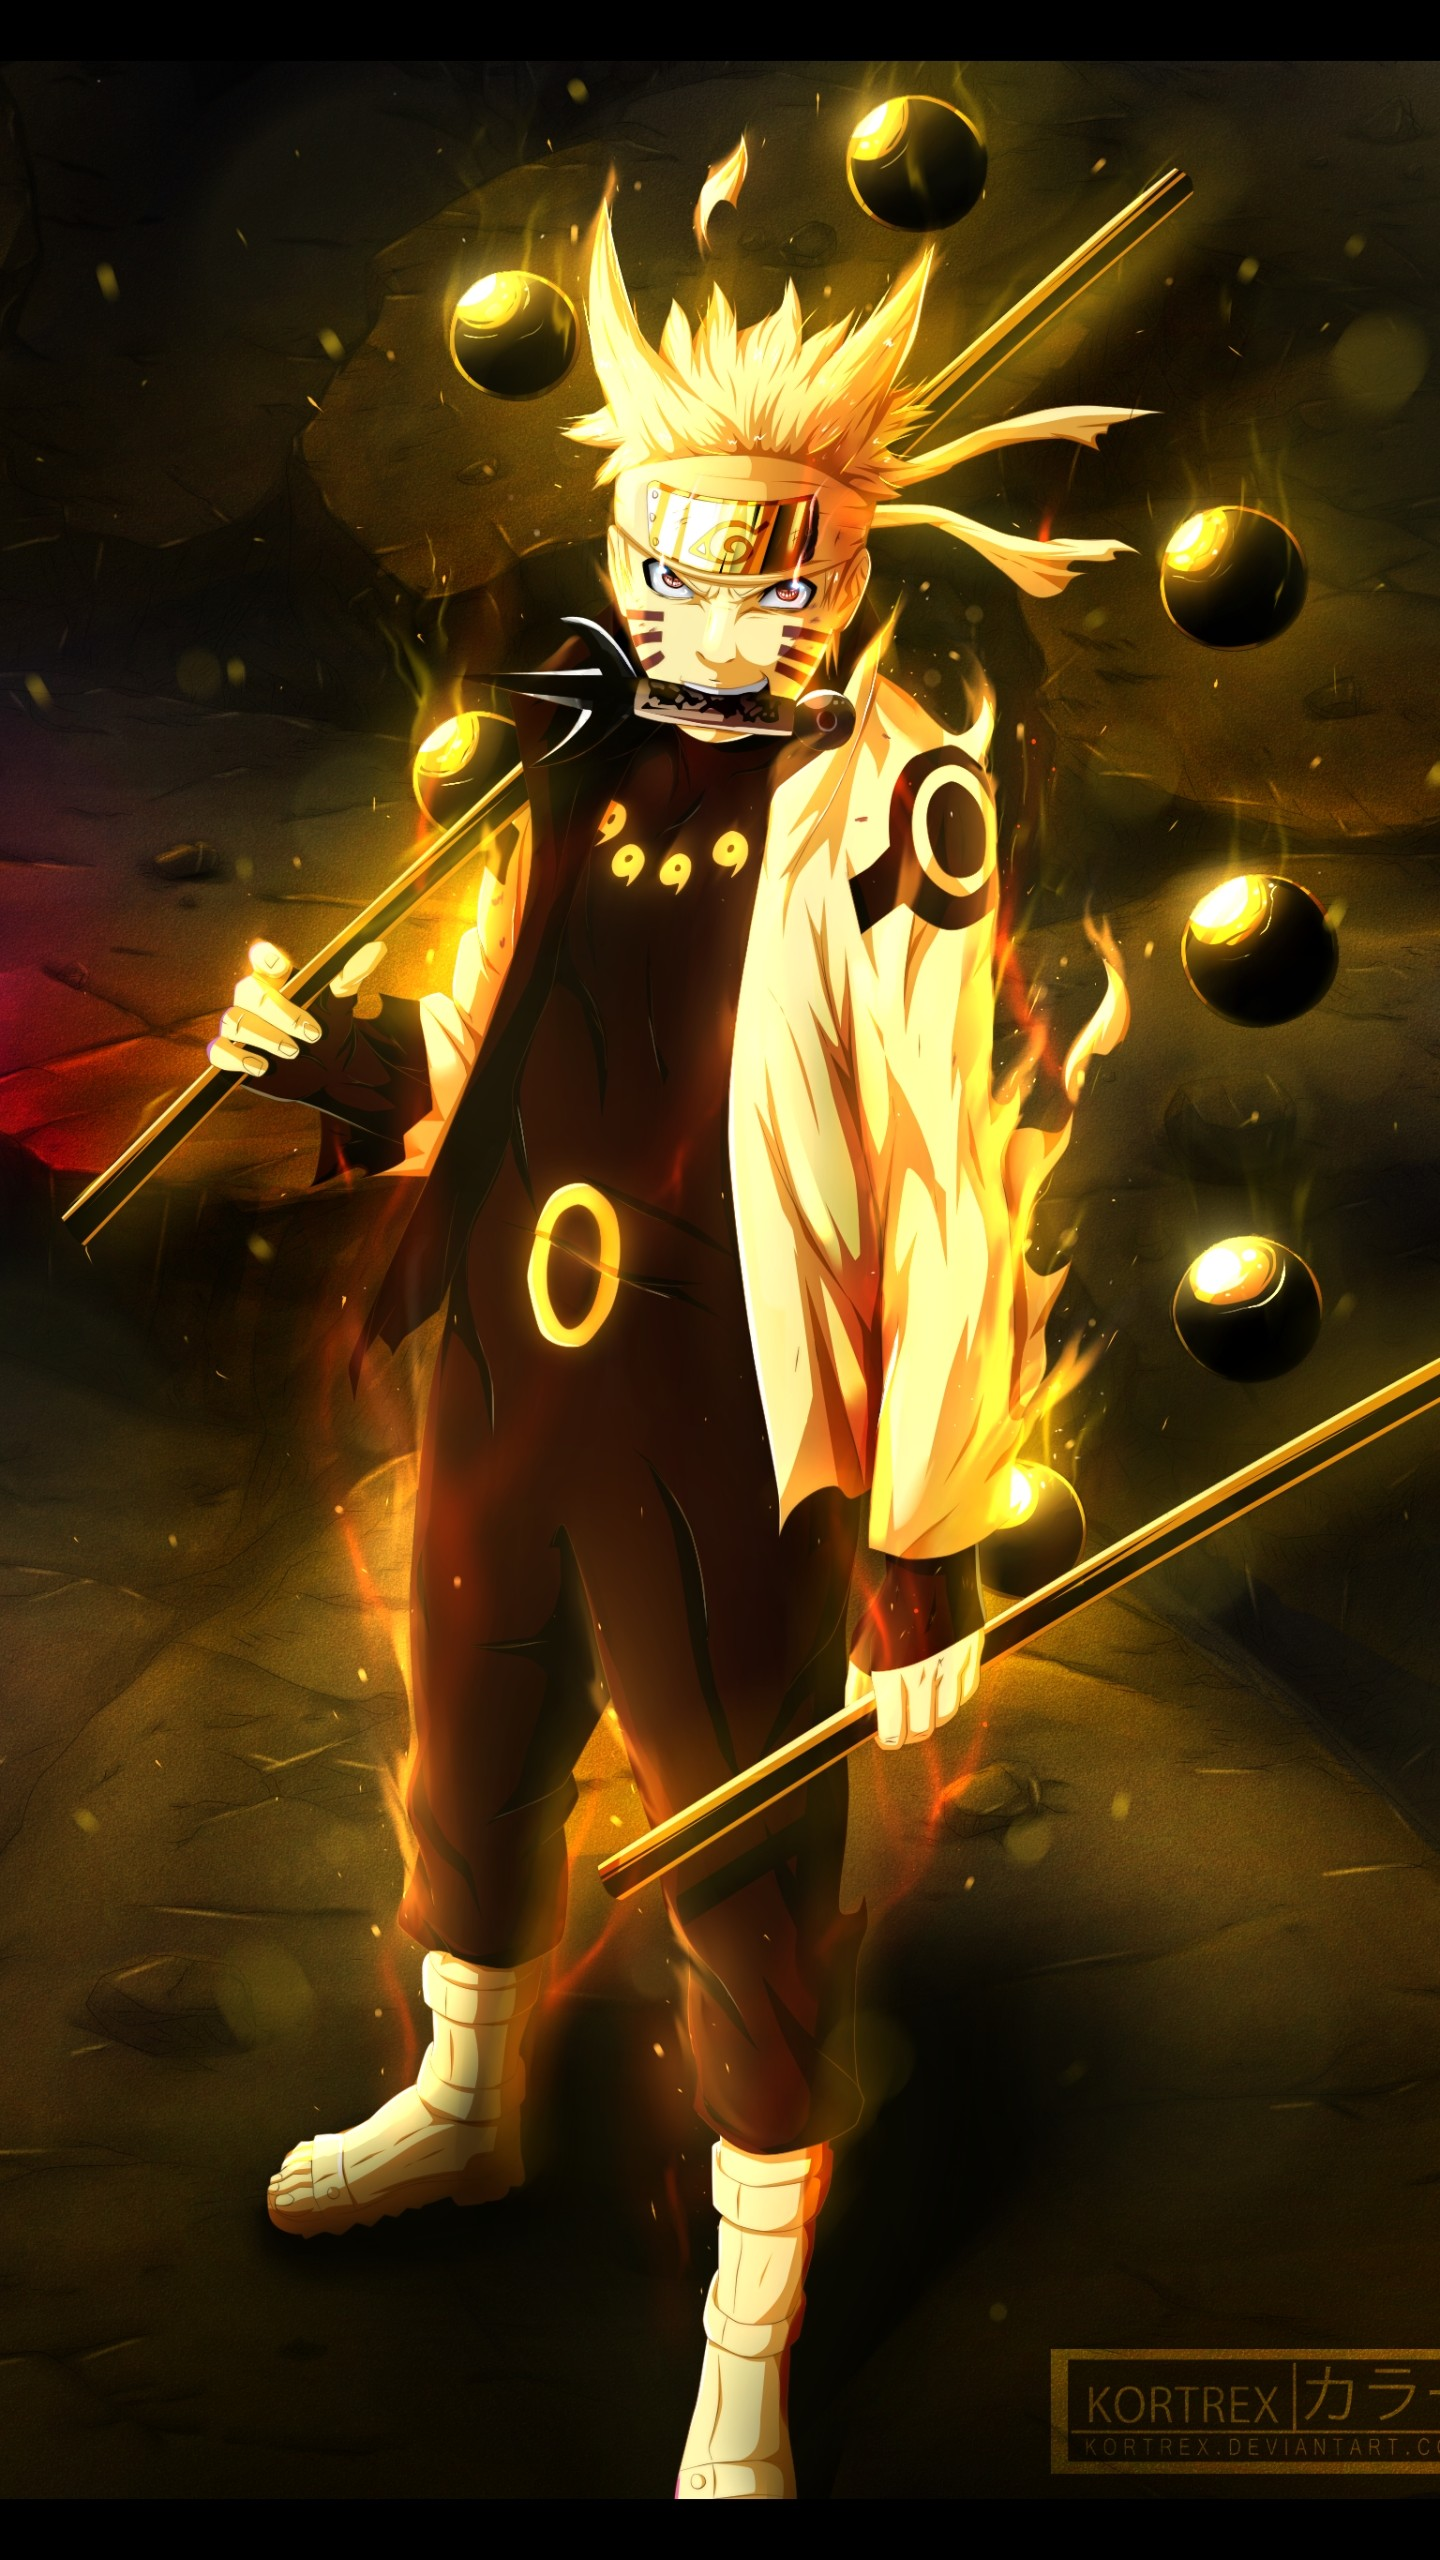 Naruto Wallpapers HD 2018 63 images 1440x2560